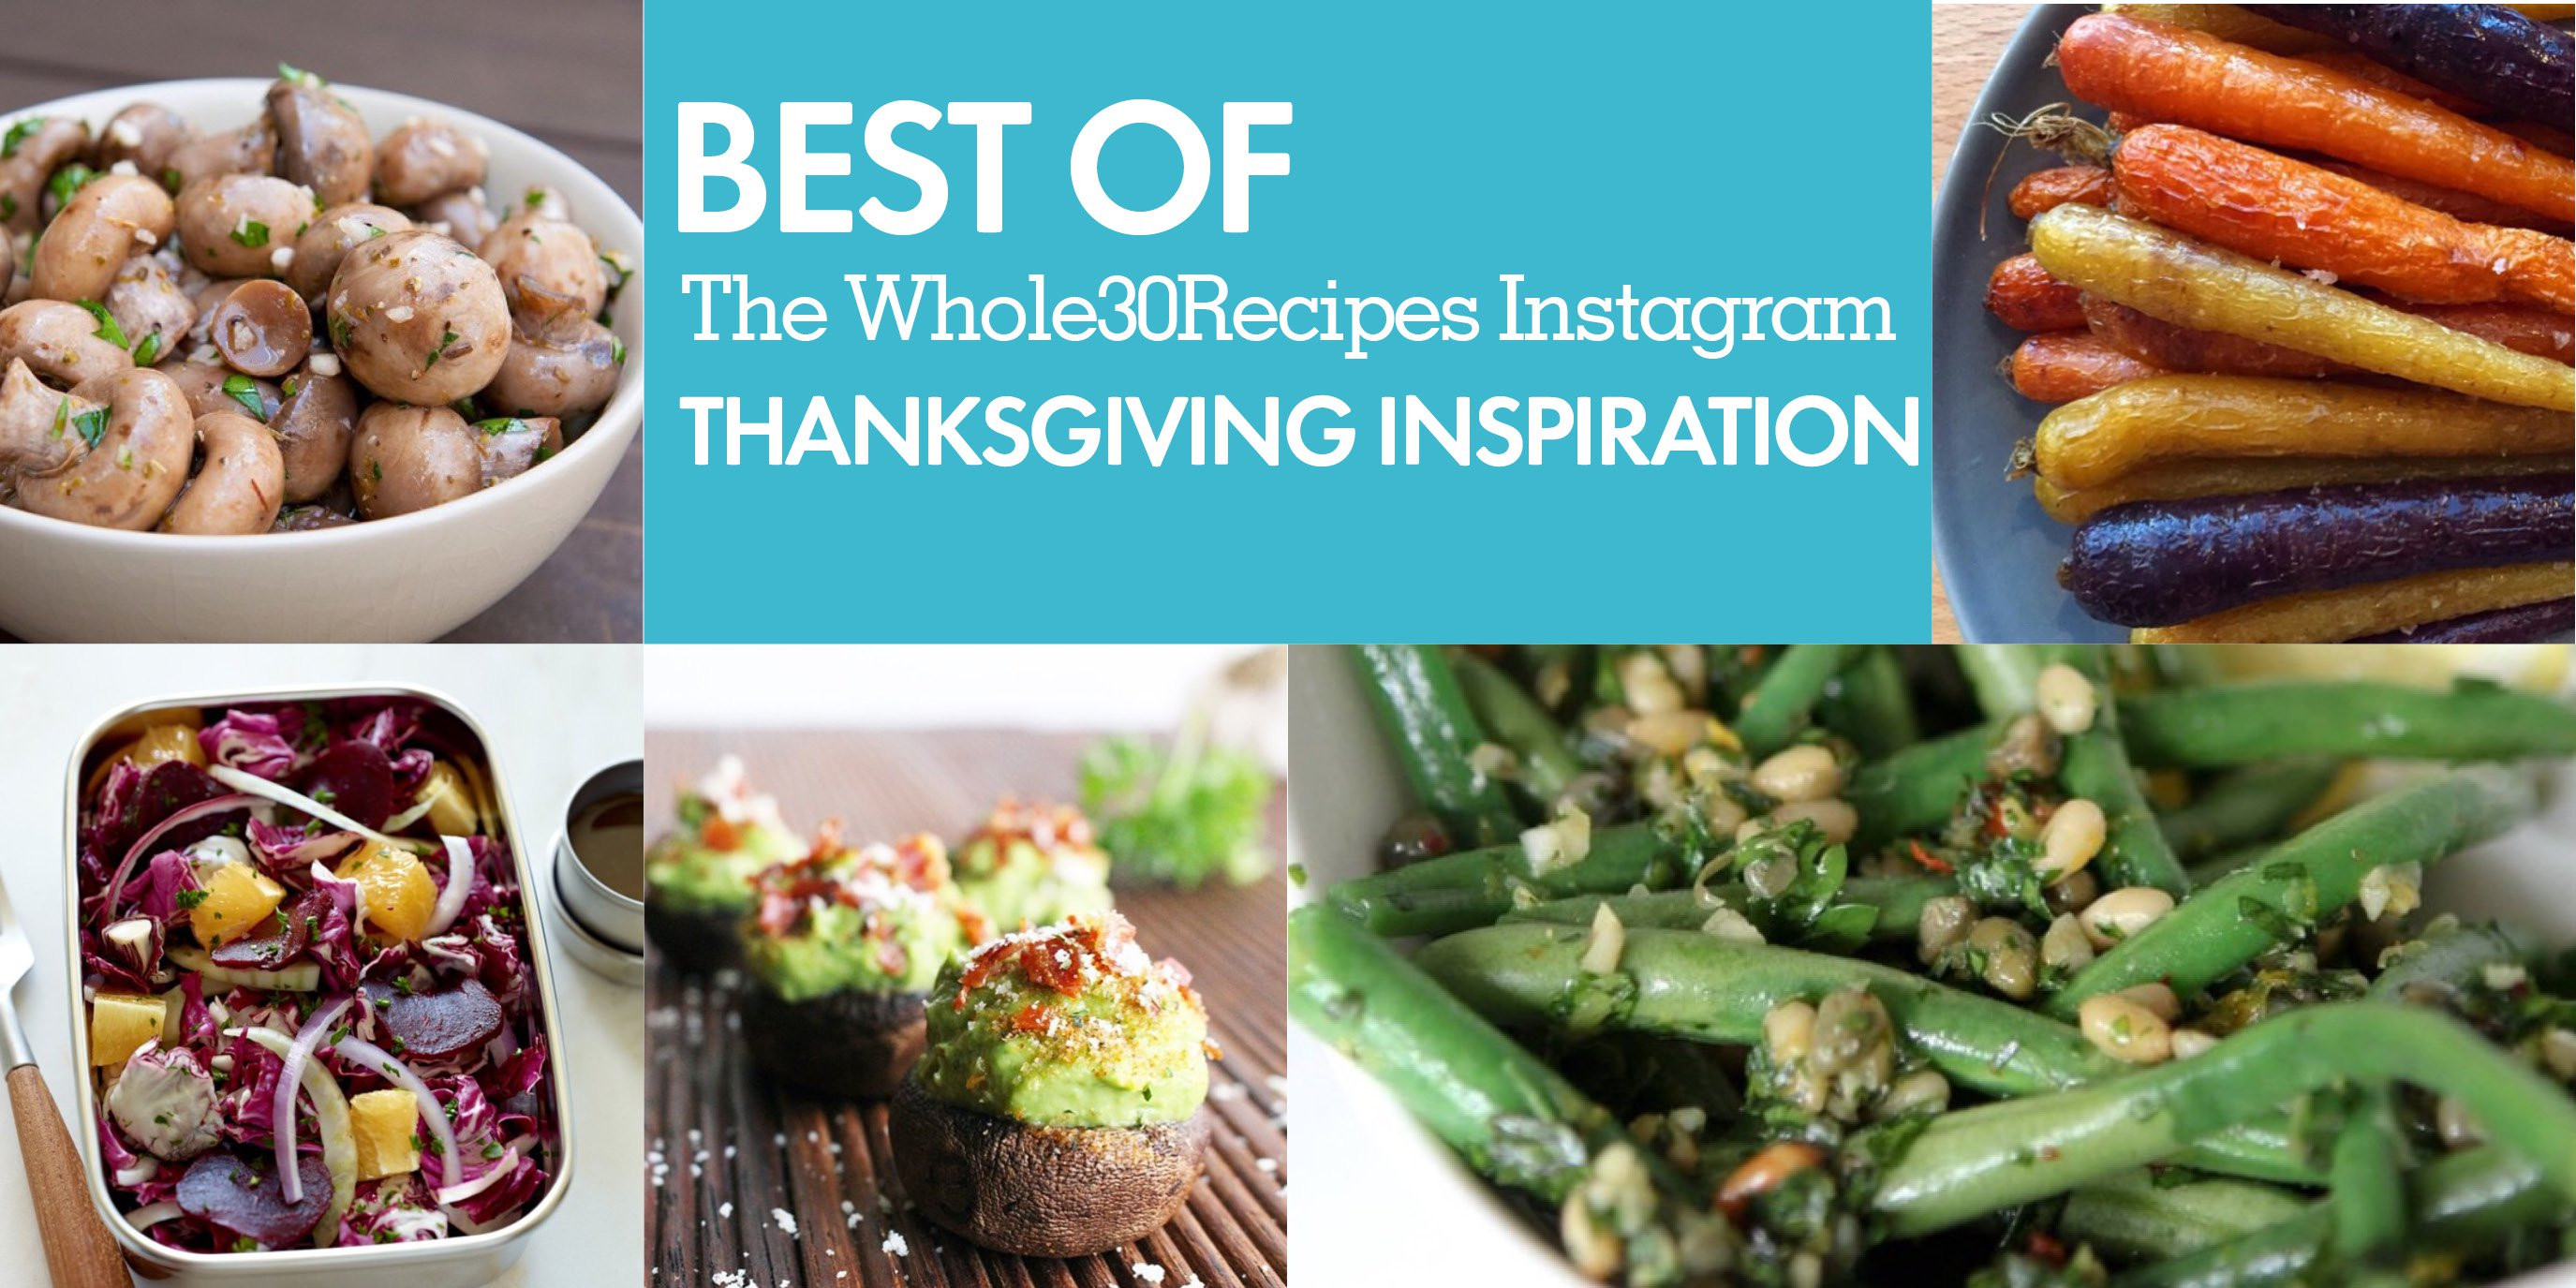 Whole30 Thanksgiving Recipes  Best of Whole30 Recipes Thanksgiving Inspiration